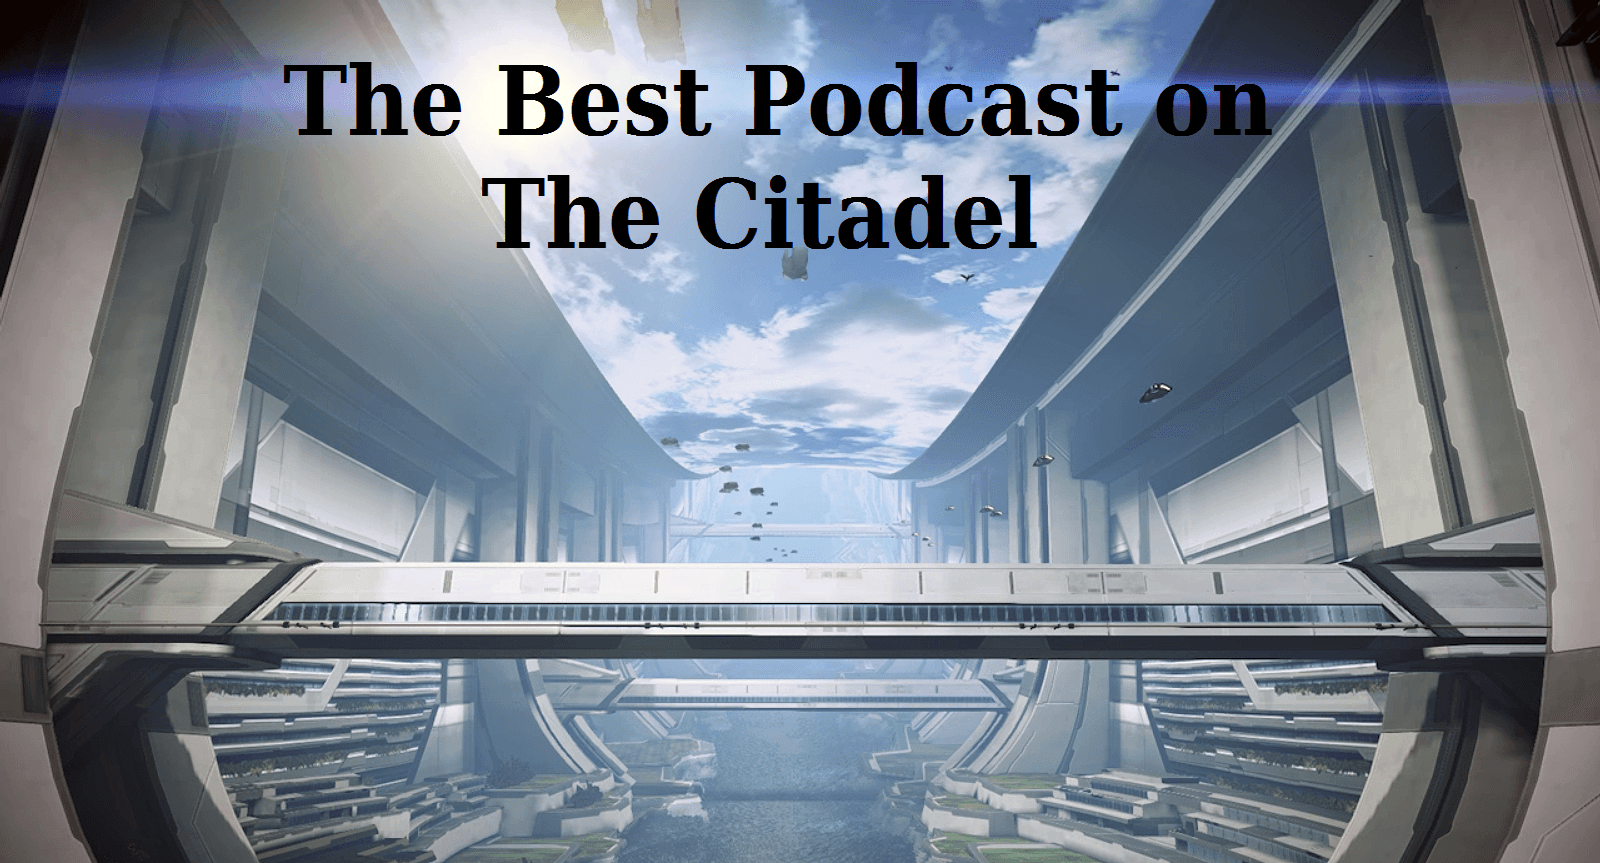 The Best Podcast on the Citadel, Episode 25